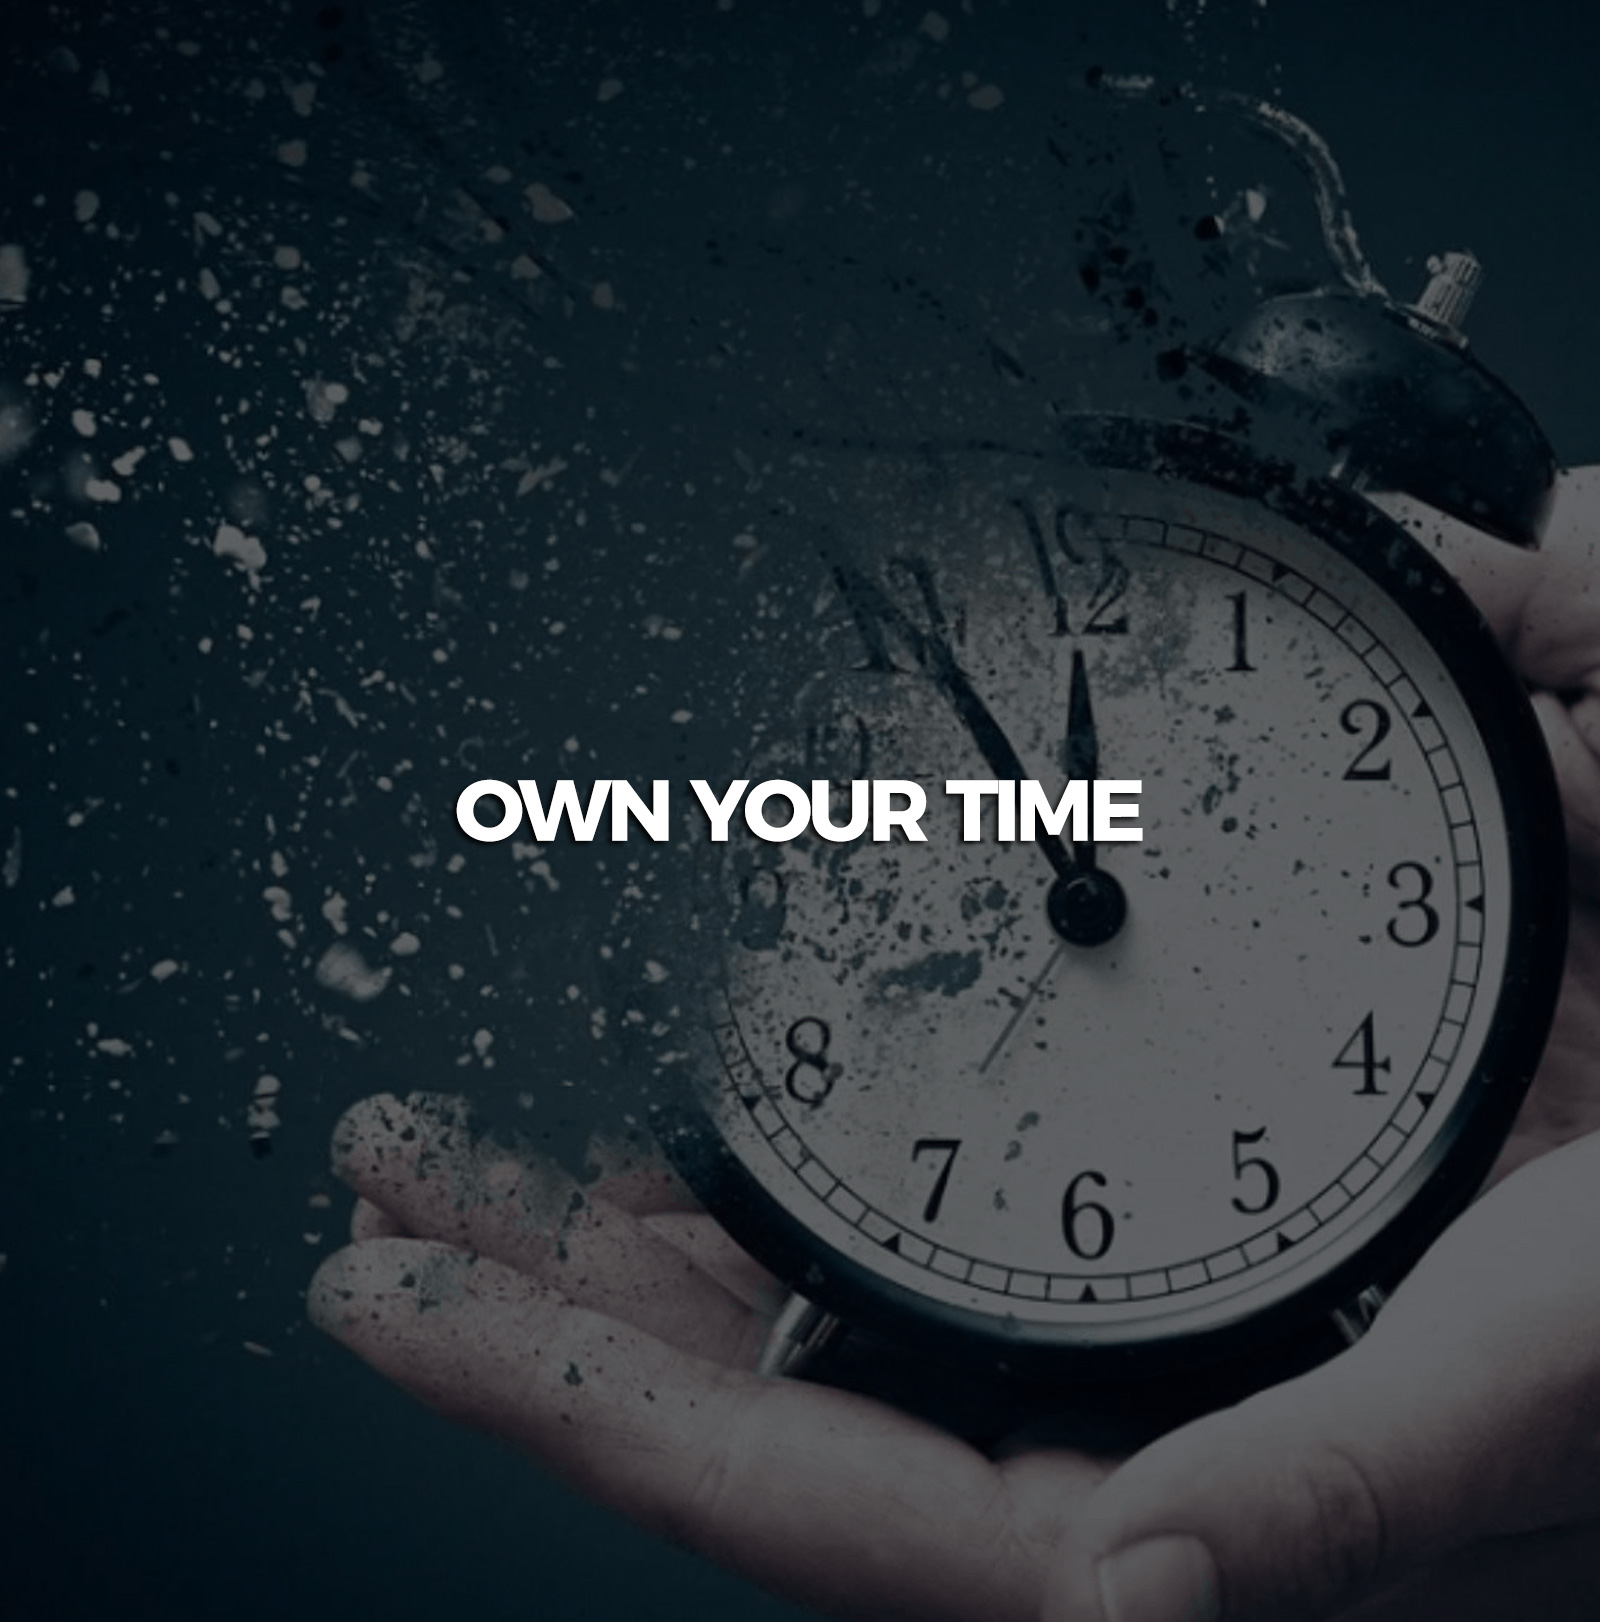 Own-your-time